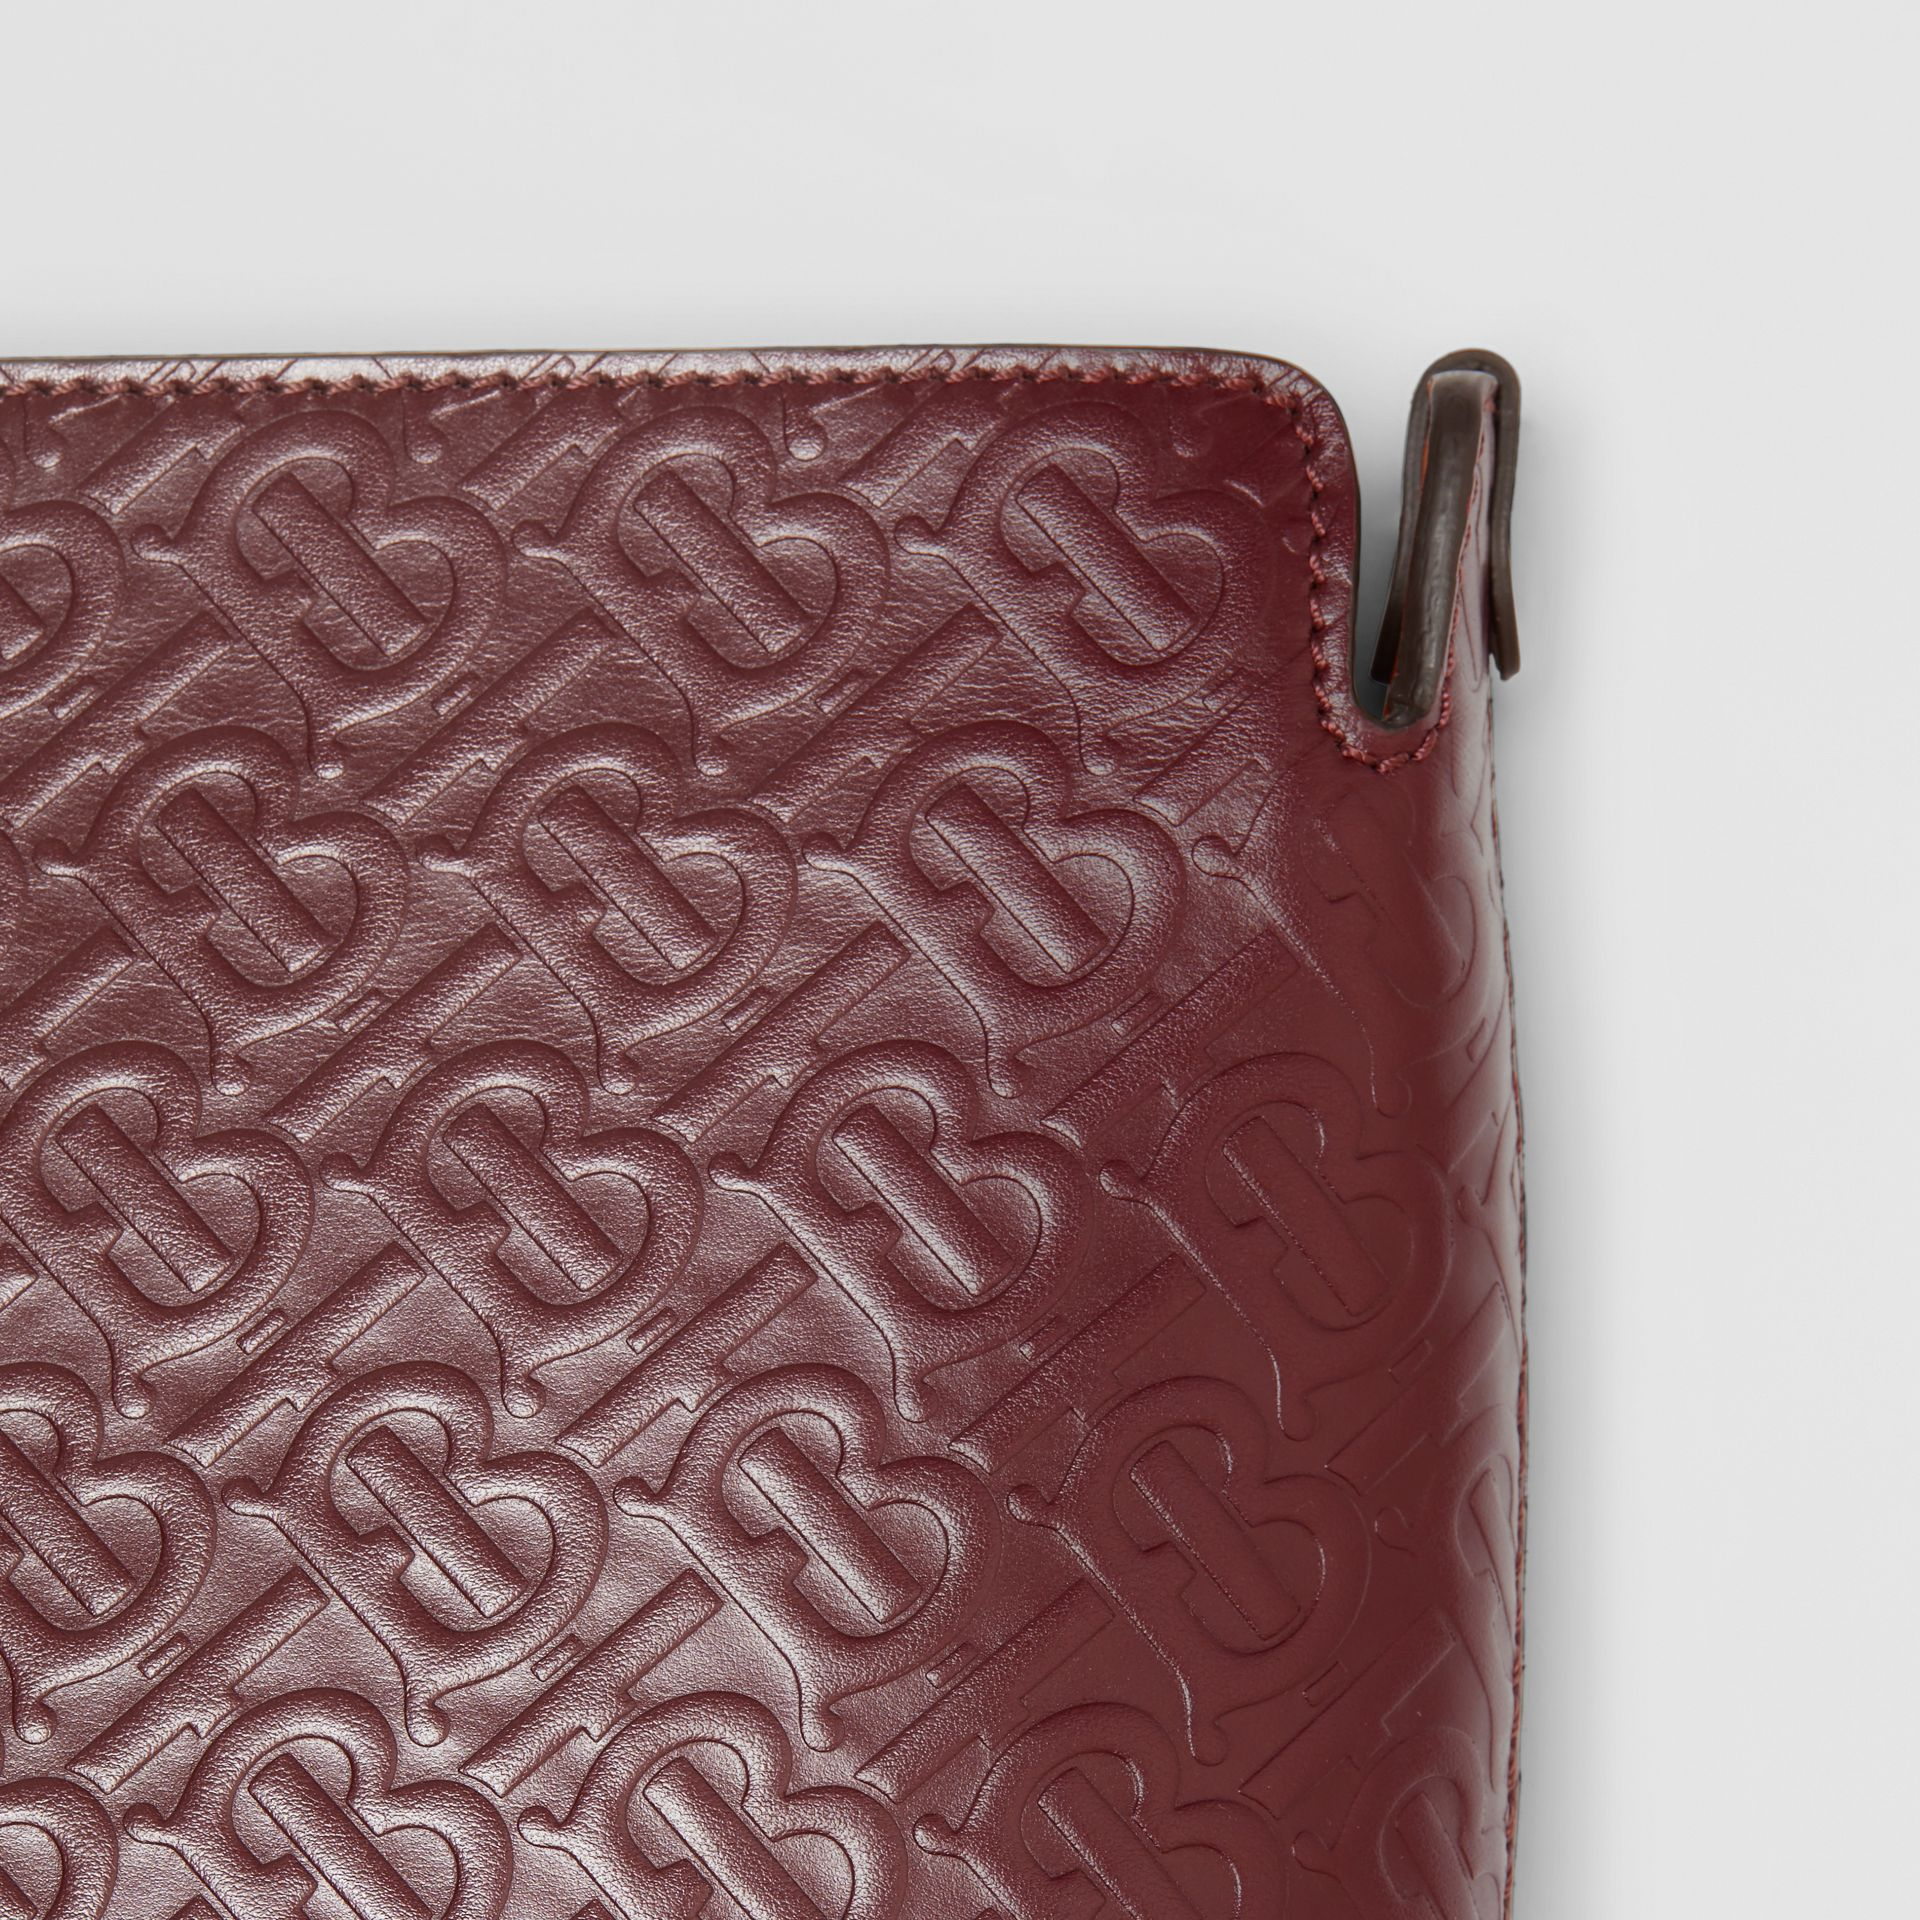 Medium Monogram Leather Clutch in Oxblood - Women | Burberry United Kingdom - gallery image 1